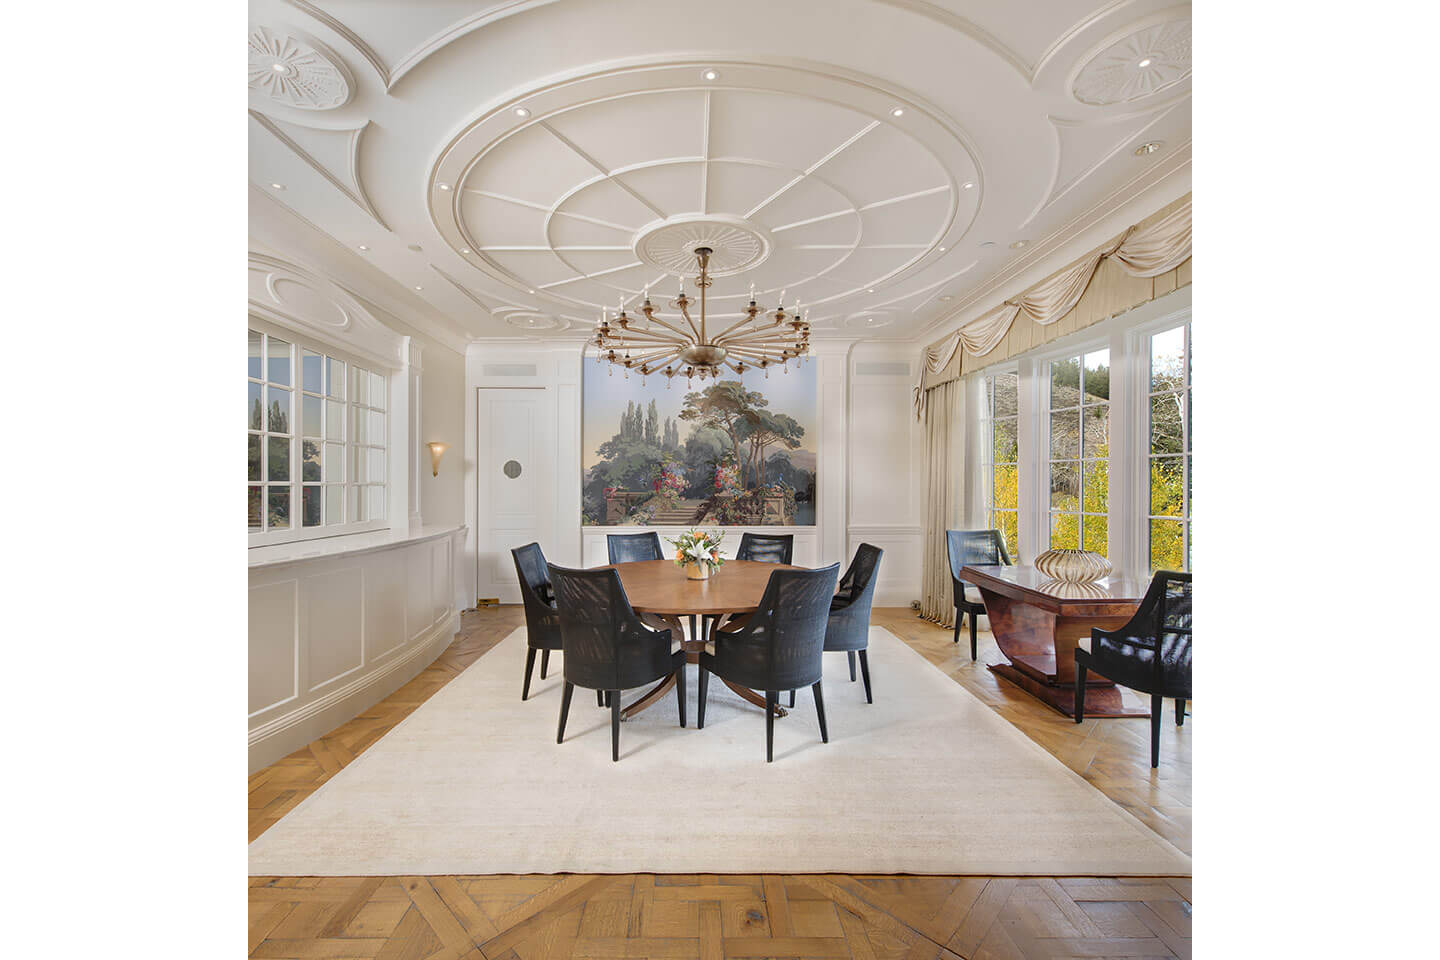 Dining room with architectural mouldings on ceiling